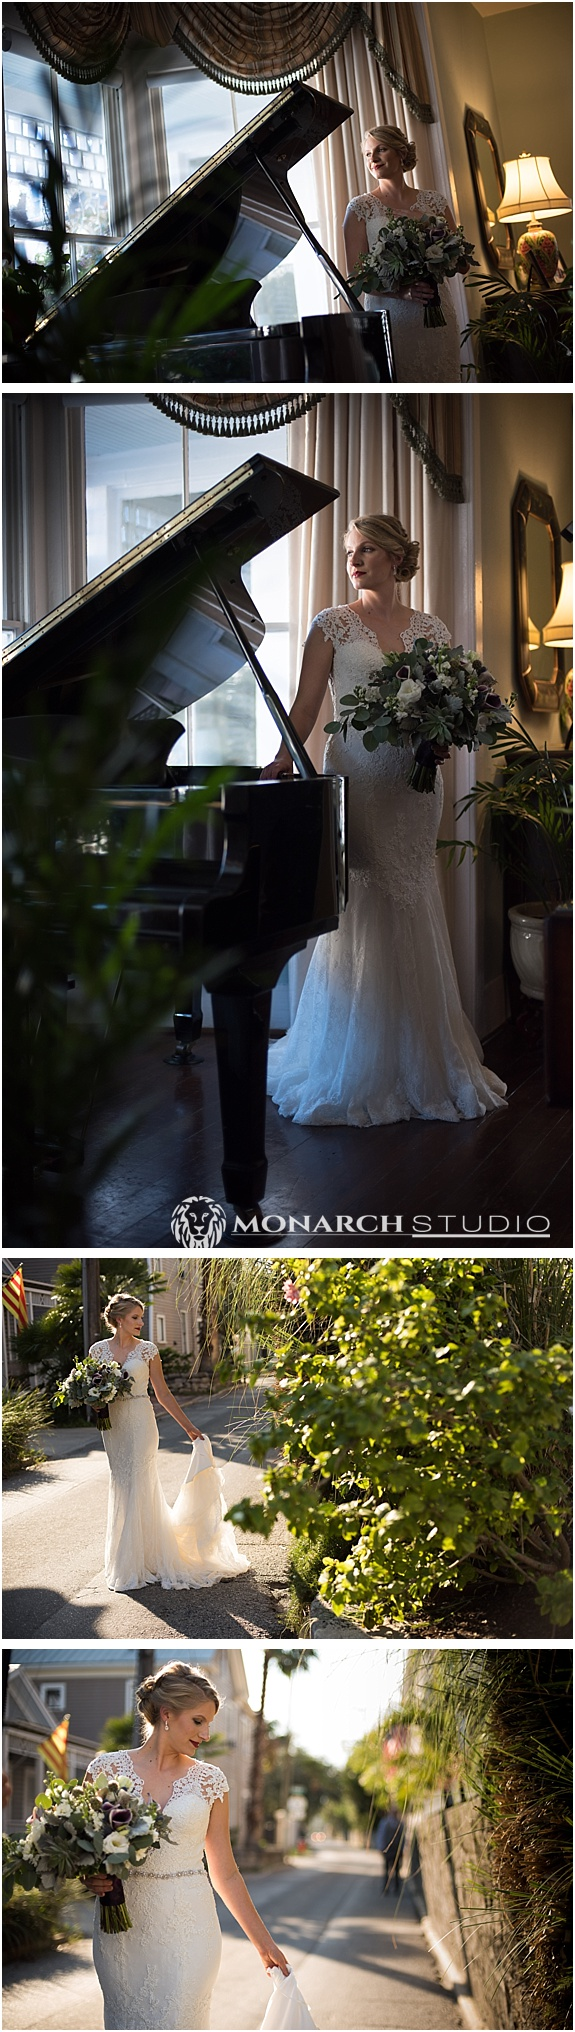 015-st-augustine-weddding-photographer-riverhouse.jpg